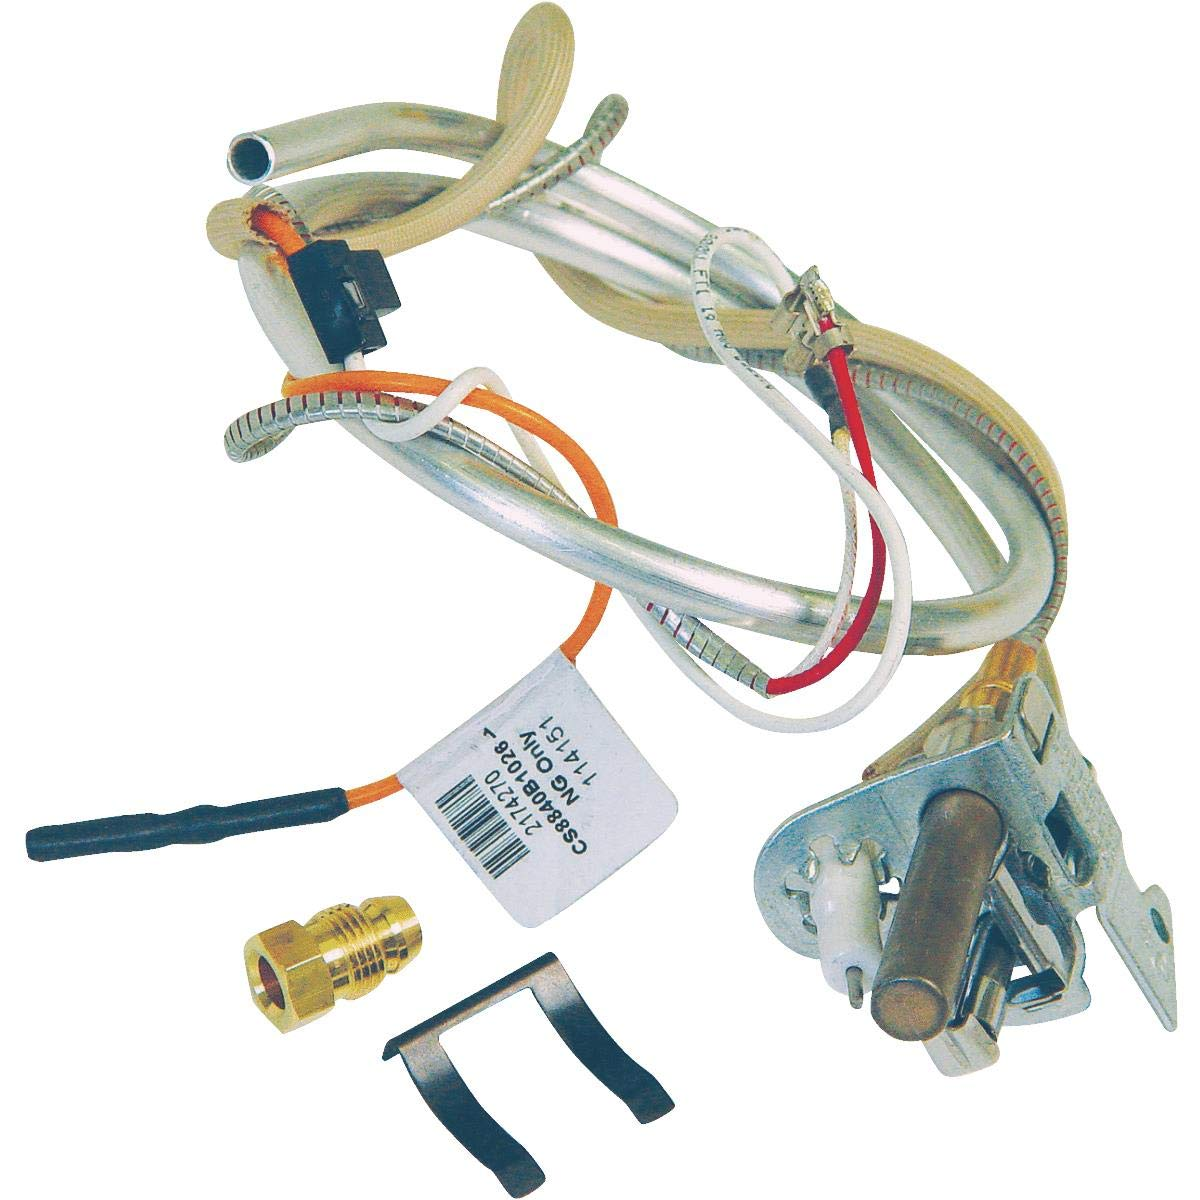 Reliance Water Heater 9007876 Gas Thermopile Assembly, Pack of 1 by Reliance Water Heater